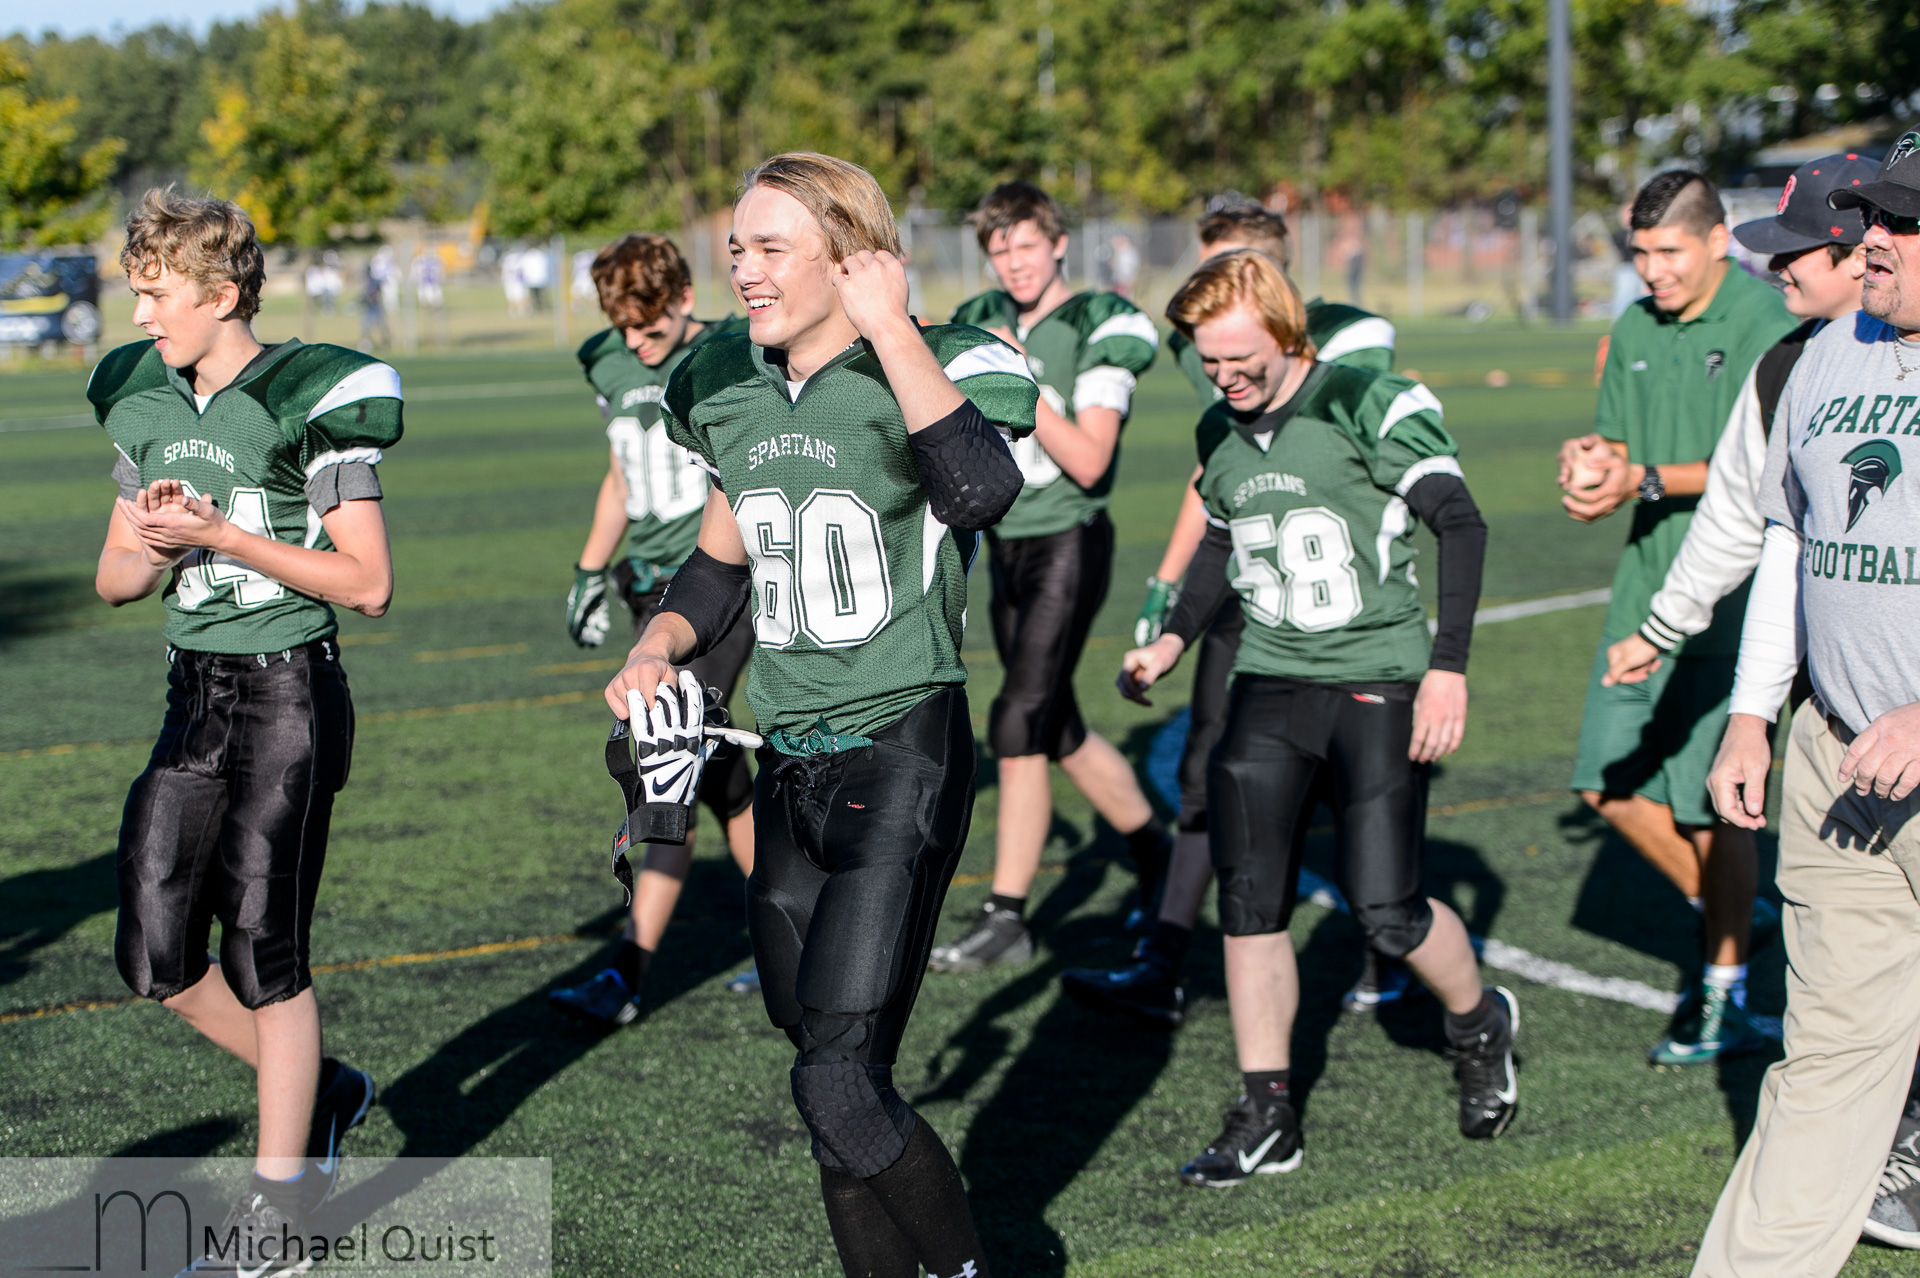 U16-RS-Bowl-2015-Ørestaden-Spartans-vs-Slagelse-Wolfpack-51